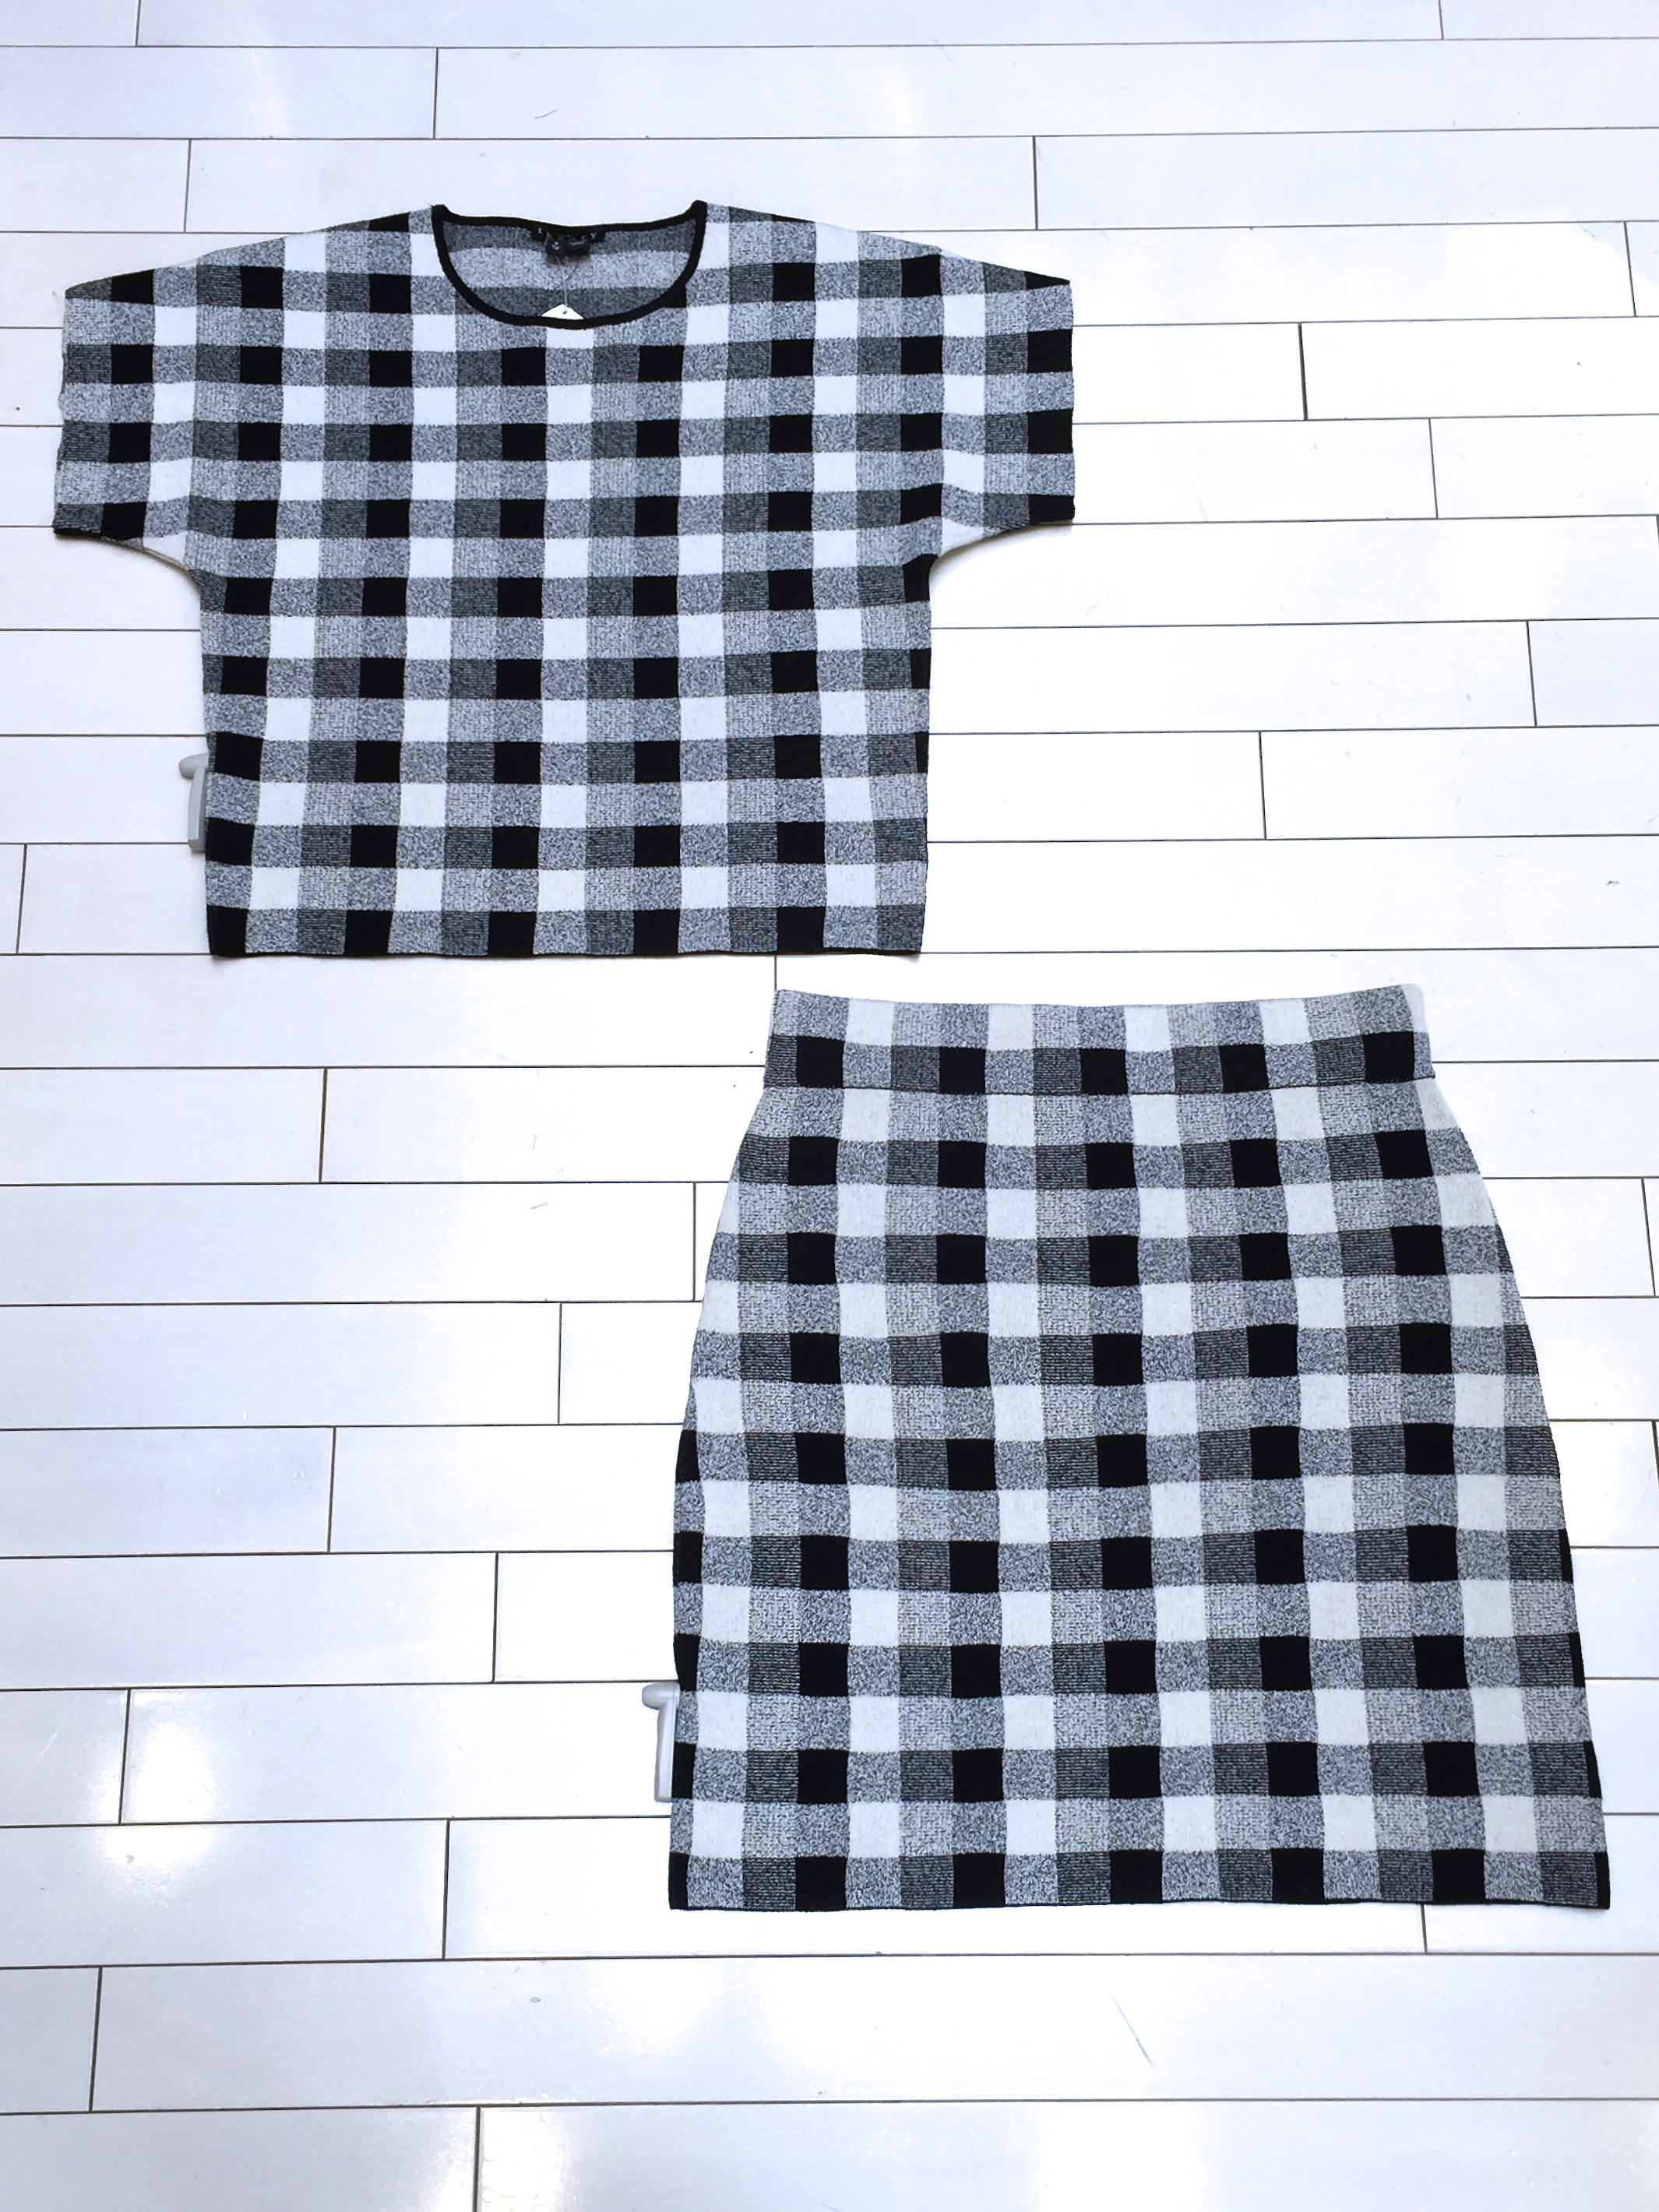 Theory Seblyn Top and Holeen Skirt